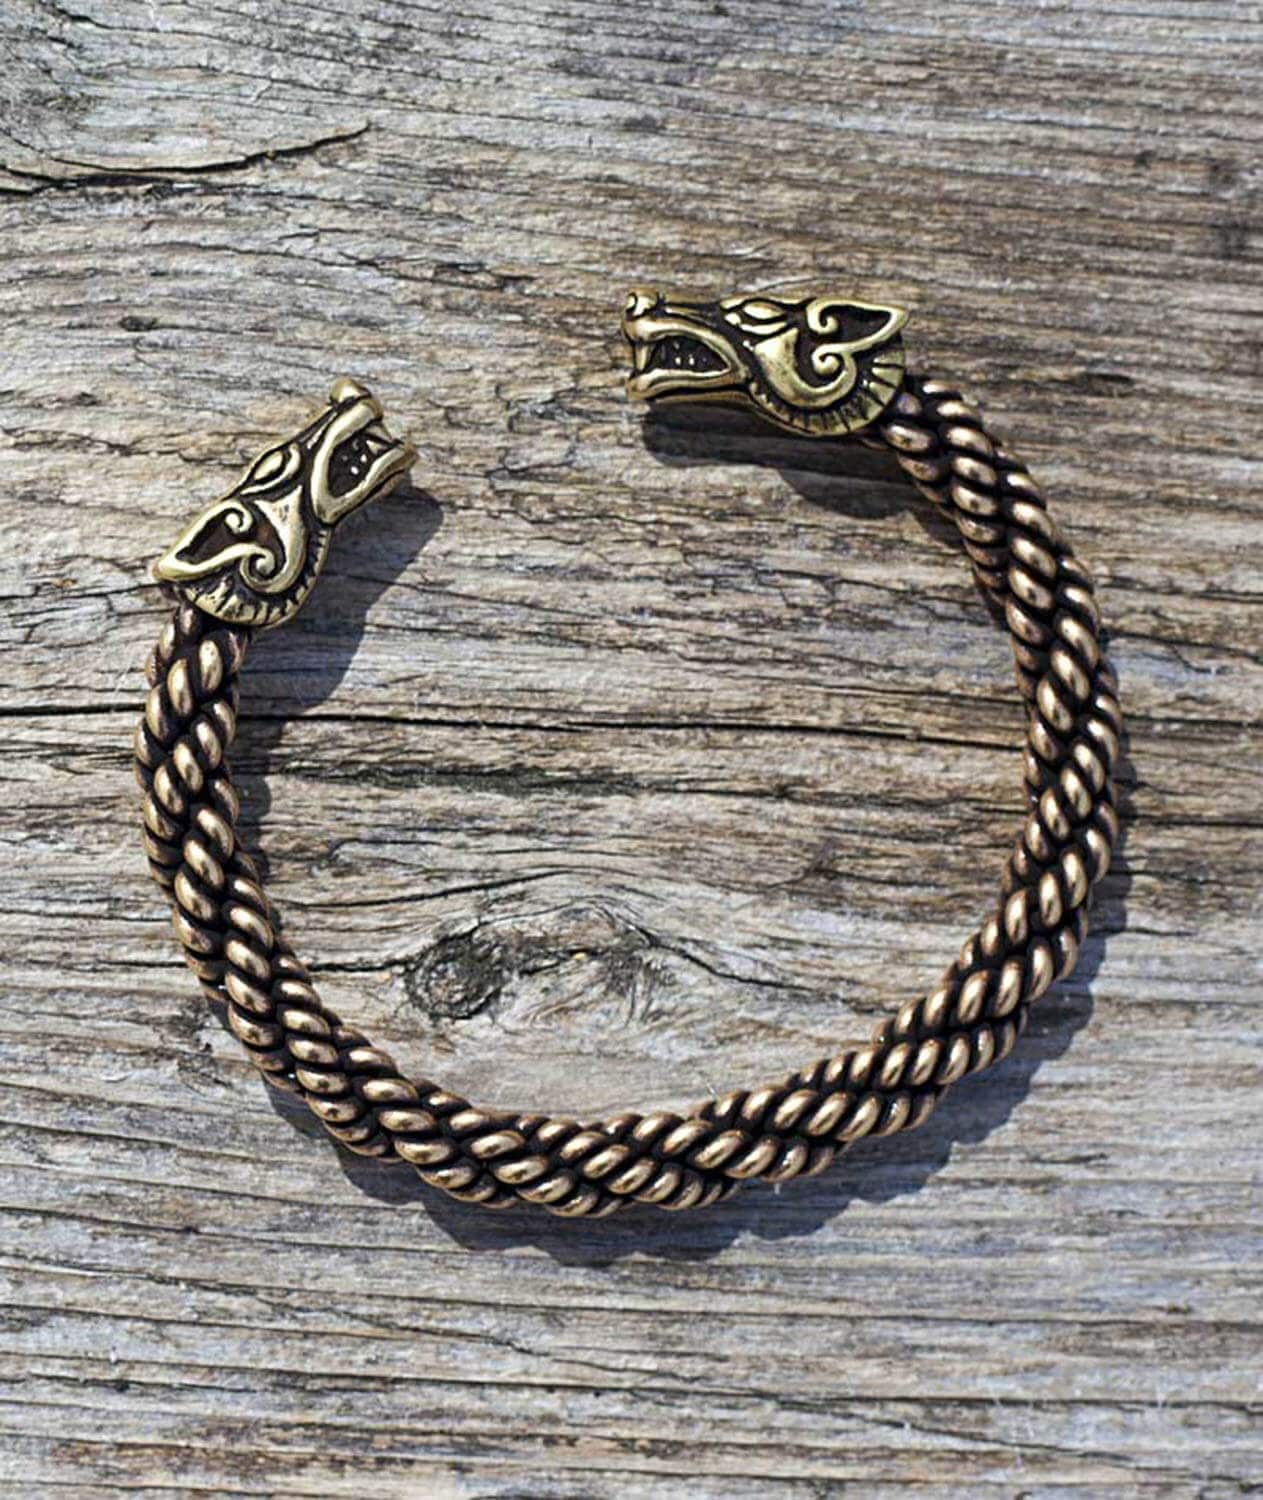 Why Did the Celts Wear Torcs?